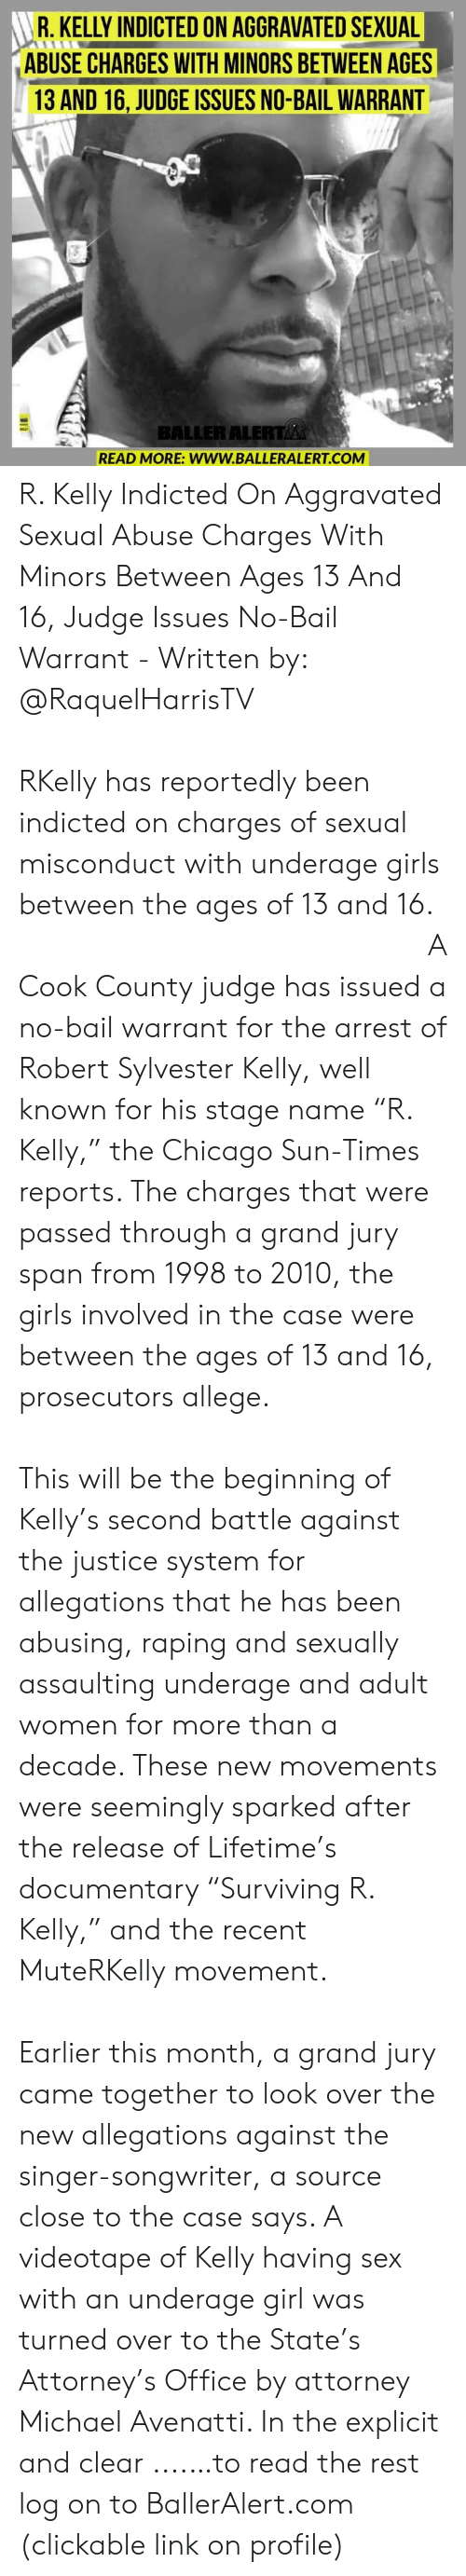 "Baller Alert, Chicago, and Girls: R. KELLY INDICTED ON AGGRAVATED SEXUAL  ABUSE CHARGES WITH MINORS BETWEEN AGES  13 AND 16, JUDGE ISSUES NO-BAIL WARRANT  BALLER ALERT  READ MORE: www.BALLERALERT.COM R. Kelly Indicted On Aggravated Sexual Abuse Charges With Minors Between Ages 13 And 16, Judge Issues No-Bail Warrant - Written by: @RaquelHarrisTV ⠀⠀⠀⠀⠀⠀⠀⠀⠀ ⠀⠀⠀⠀⠀⠀⠀⠀⠀ RKelly has reportedly been indicted on charges of sexual misconduct with underage girls between the ages of 13 and 16. ⠀⠀⠀⠀⠀⠀⠀⠀⠀ ⠀⠀⠀⠀⠀⠀⠀⠀⠀ A Cook County judge has issued a no-bail warrant for the arrest of Robert Sylvester Kelly, well known for his stage name ""R. Kelly,"" the Chicago Sun-Times reports. The charges that were passed through a grand jury span from 1998 to 2010, the girls involved in the case were between the ages of 13 and 16, prosecutors allege. ⠀⠀⠀⠀⠀⠀⠀⠀⠀ ⠀⠀⠀⠀⠀⠀⠀⠀⠀ This will be the beginning of Kelly's second battle against the justice system for allegations that he has been abusing, raping and sexually assaulting underage and adult women for more than a decade. These new movements were seemingly sparked after the release of Lifetime's documentary ""Surviving R. Kelly,"" and the recent MuteRKelly movement. ⠀⠀⠀⠀⠀⠀⠀⠀⠀ ⠀⠀⠀⠀⠀⠀⠀⠀⠀ Earlier this month, a grand jury came together to look over the new allegations against the singer-songwriter, a source close to the case says. A videotape of Kelly having sex with an underage girl was turned over to the State's Attorney's Office by attorney Michael Avenatti. In the explicit and clear ....…to read the rest log on to BallerAlert.com (clickable link on profile)"